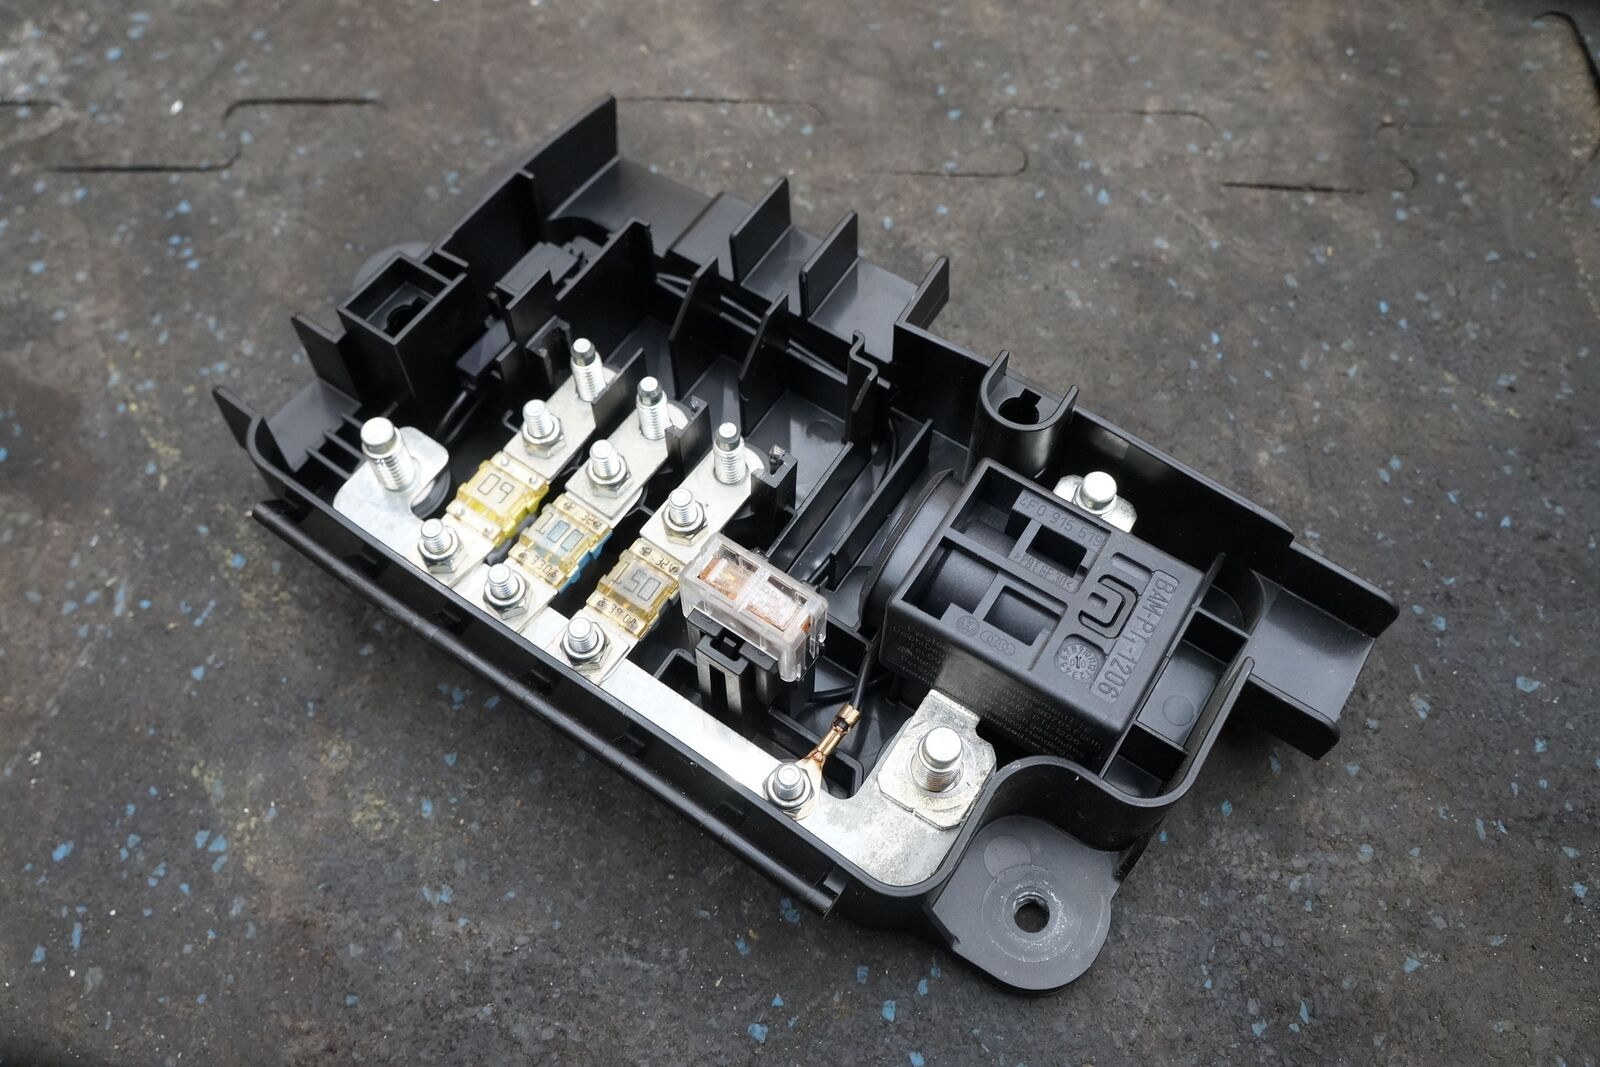 Audi R8 Fuse Box Location Trusted Wiring Diagram C5 Page 6 Pacific Motors